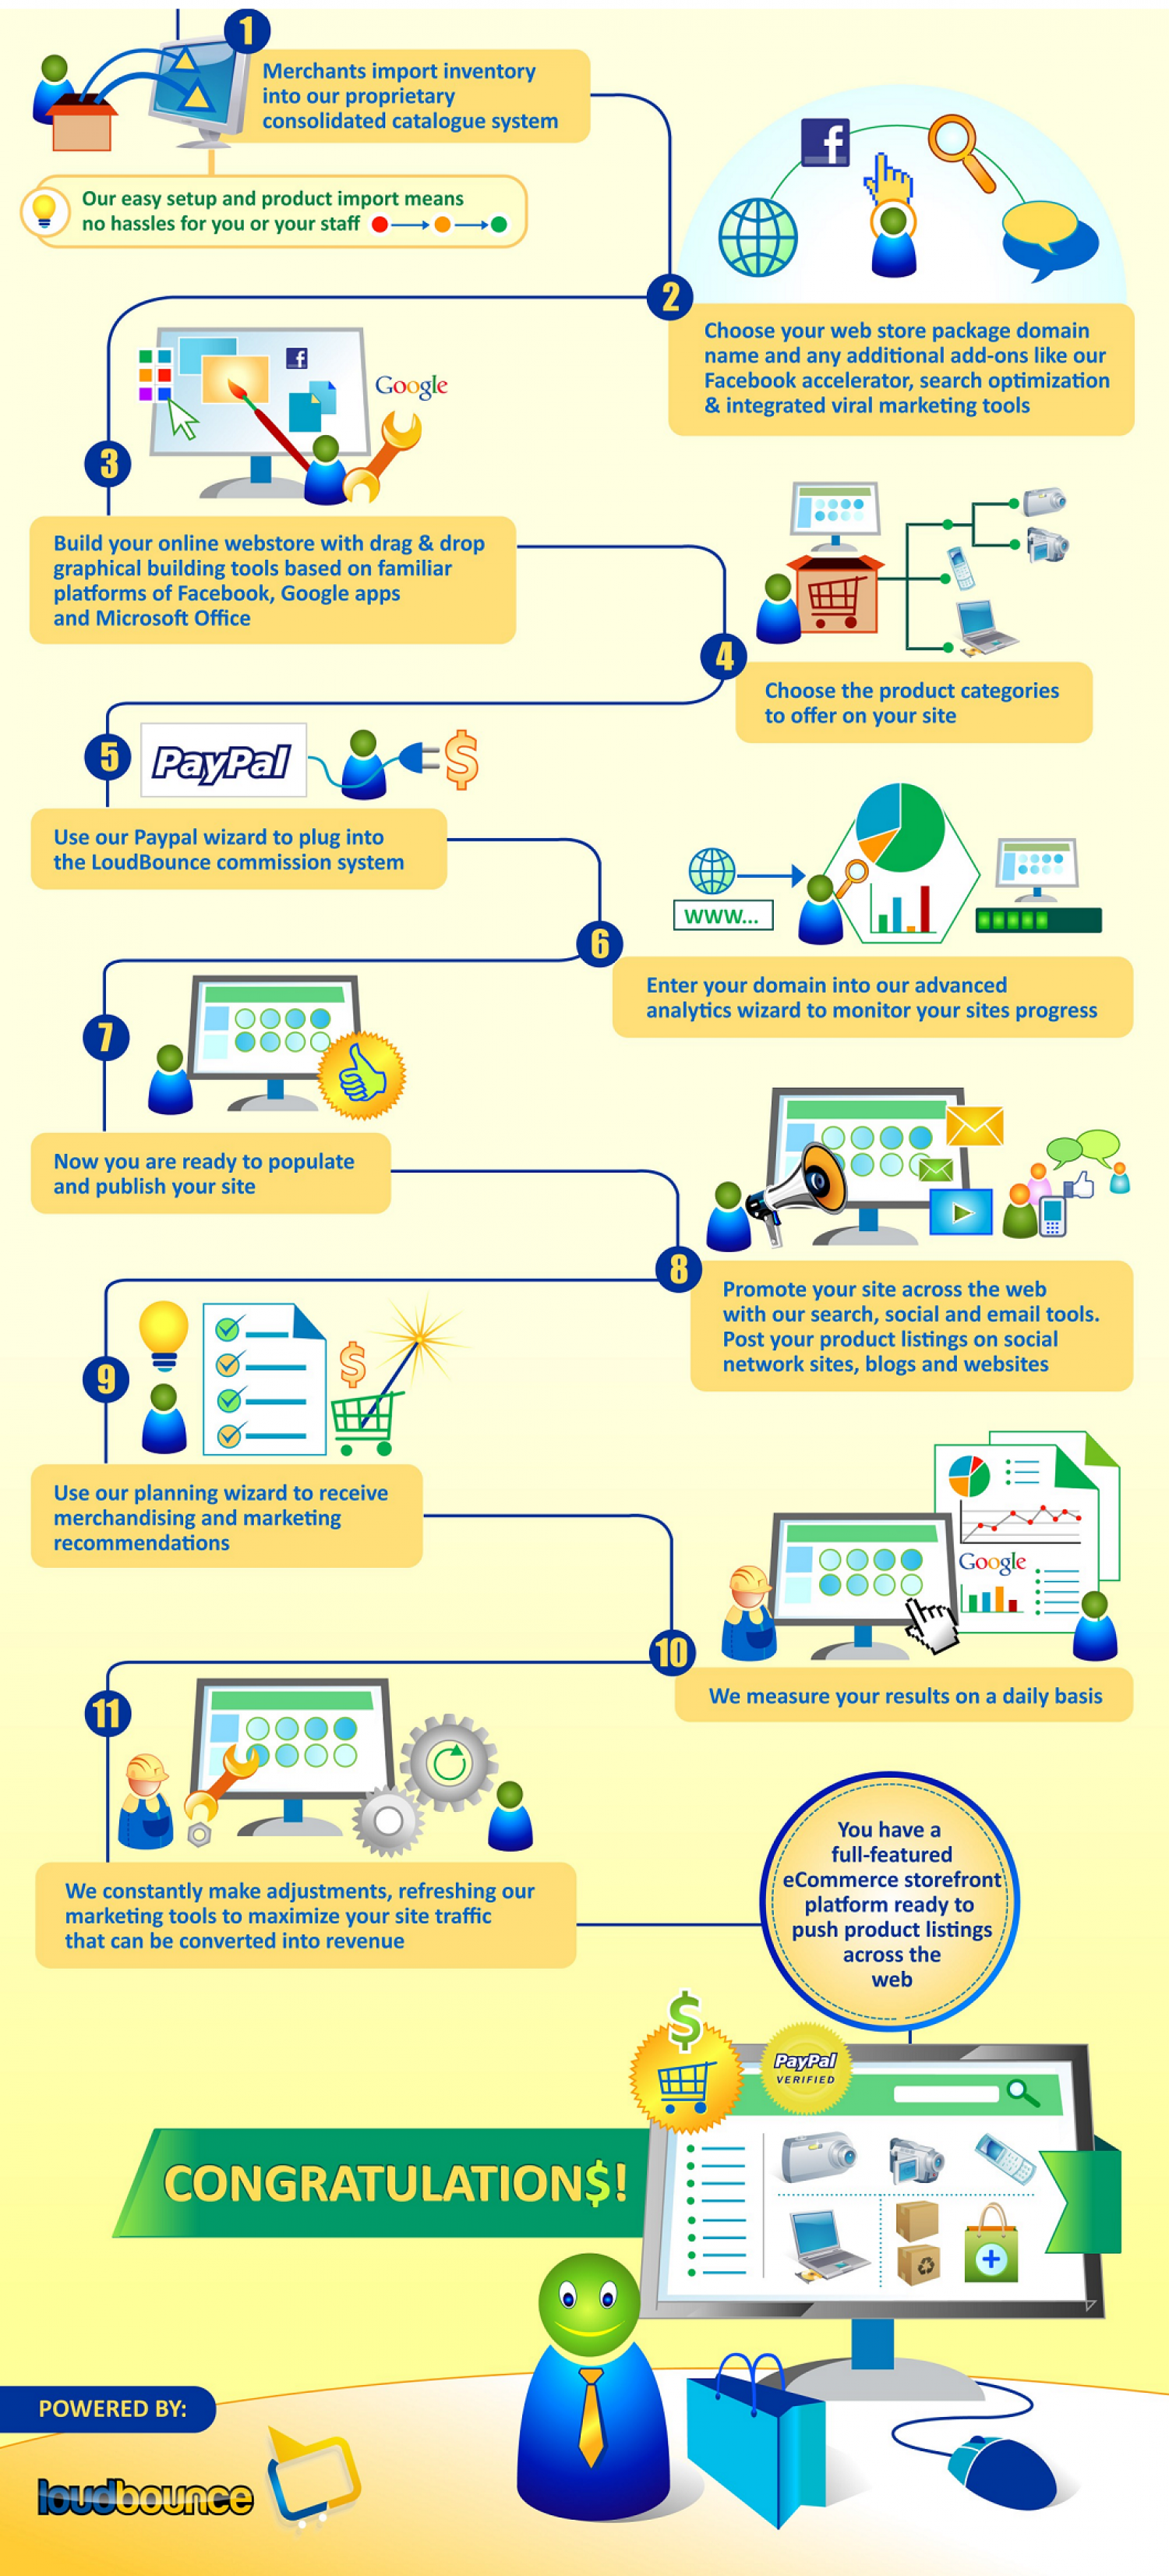 customer process of cartfm Infographic